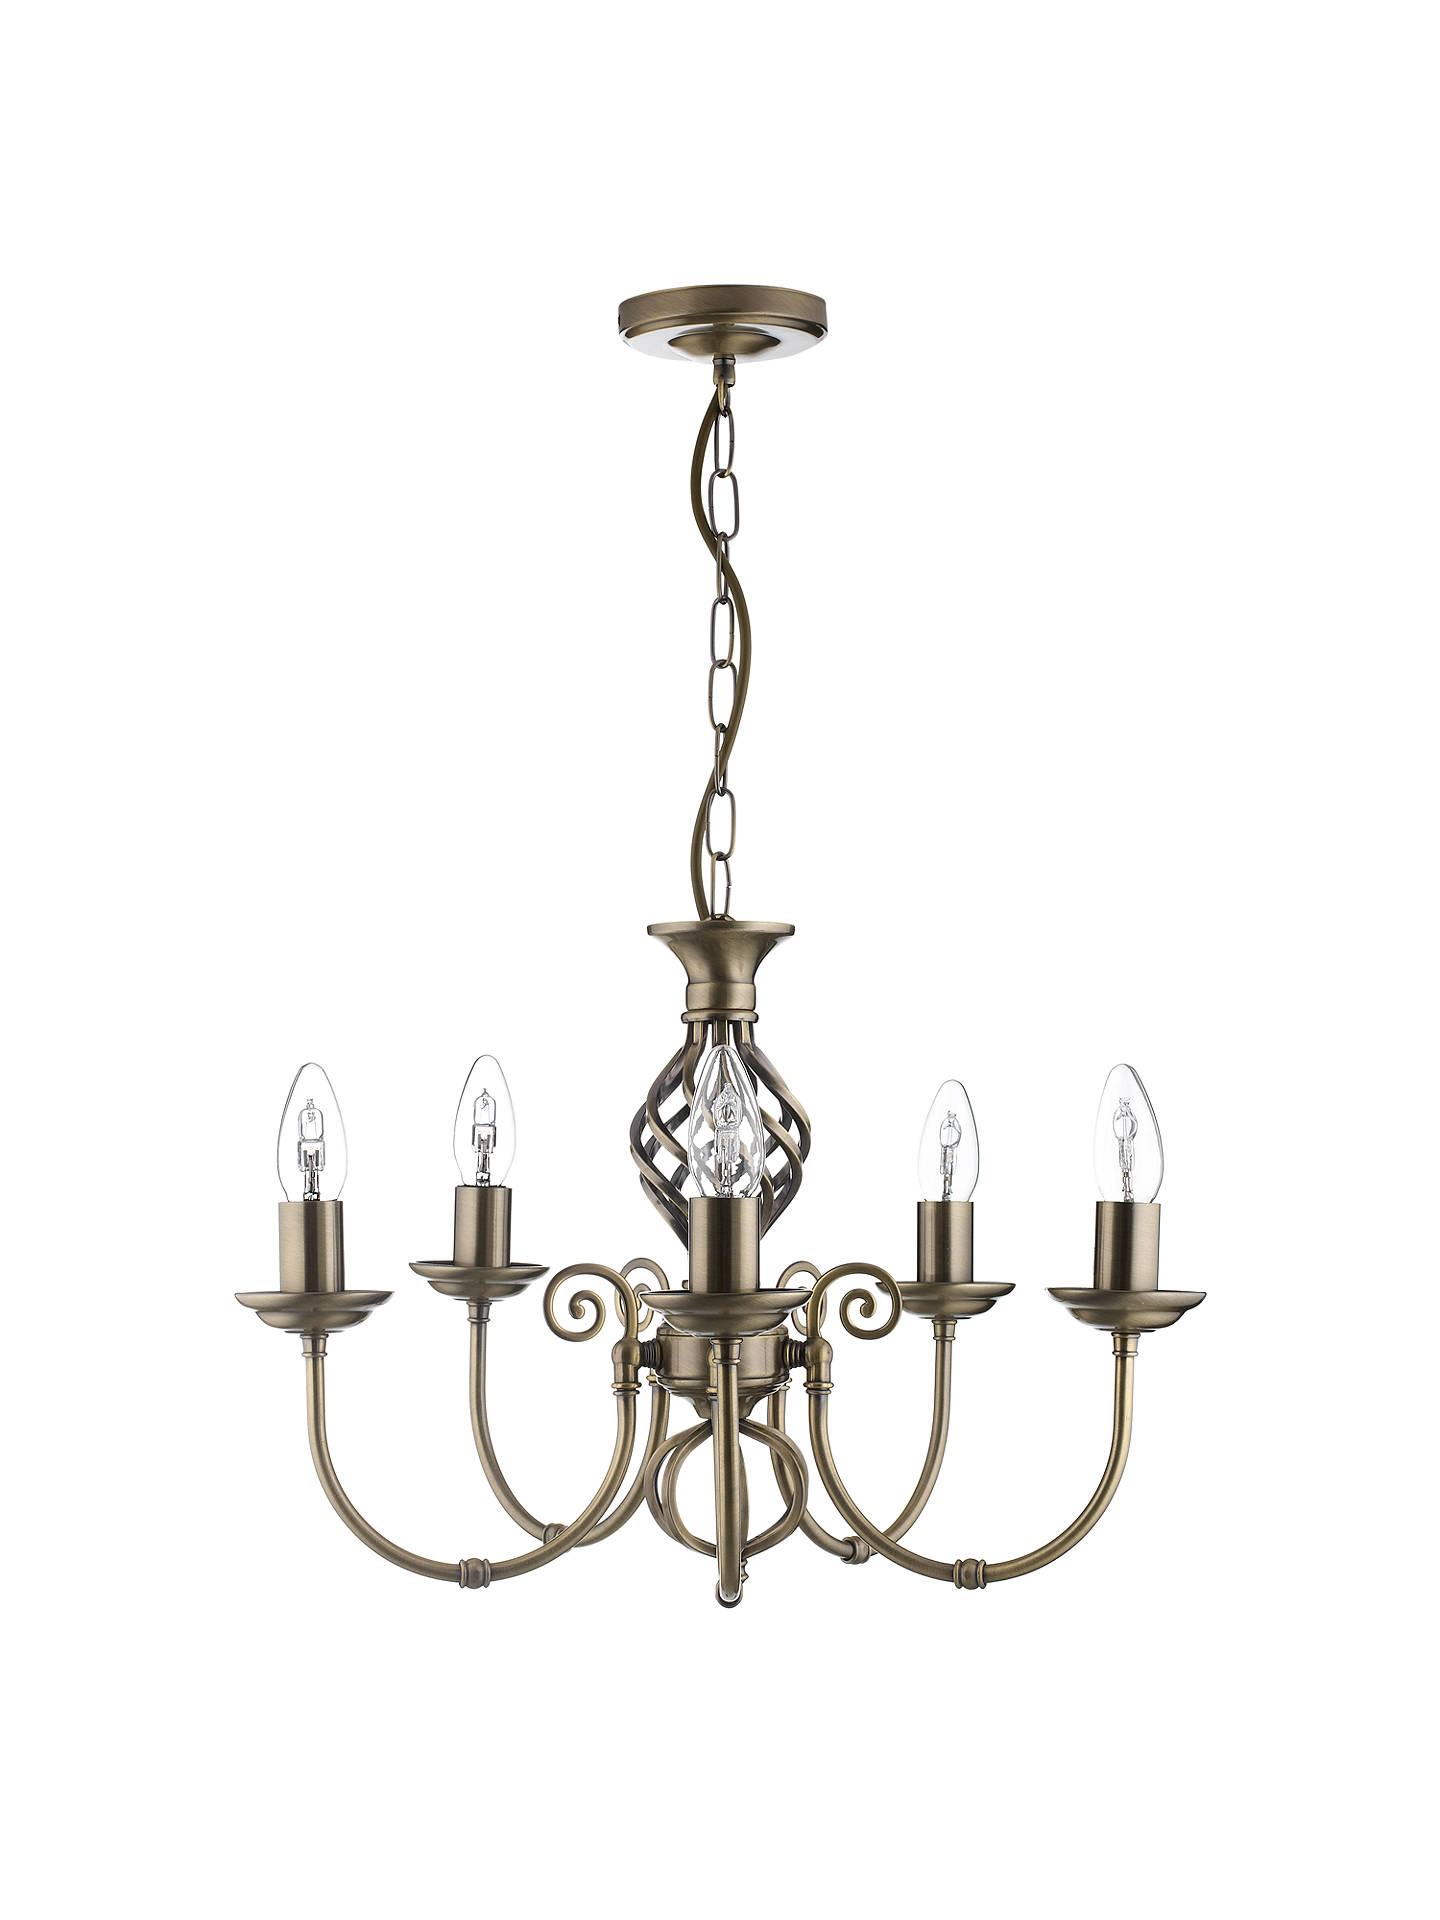 Buy John Lewis & Partners Malik Chandelier Ceiling Light, Brass Online at johnlewis.com